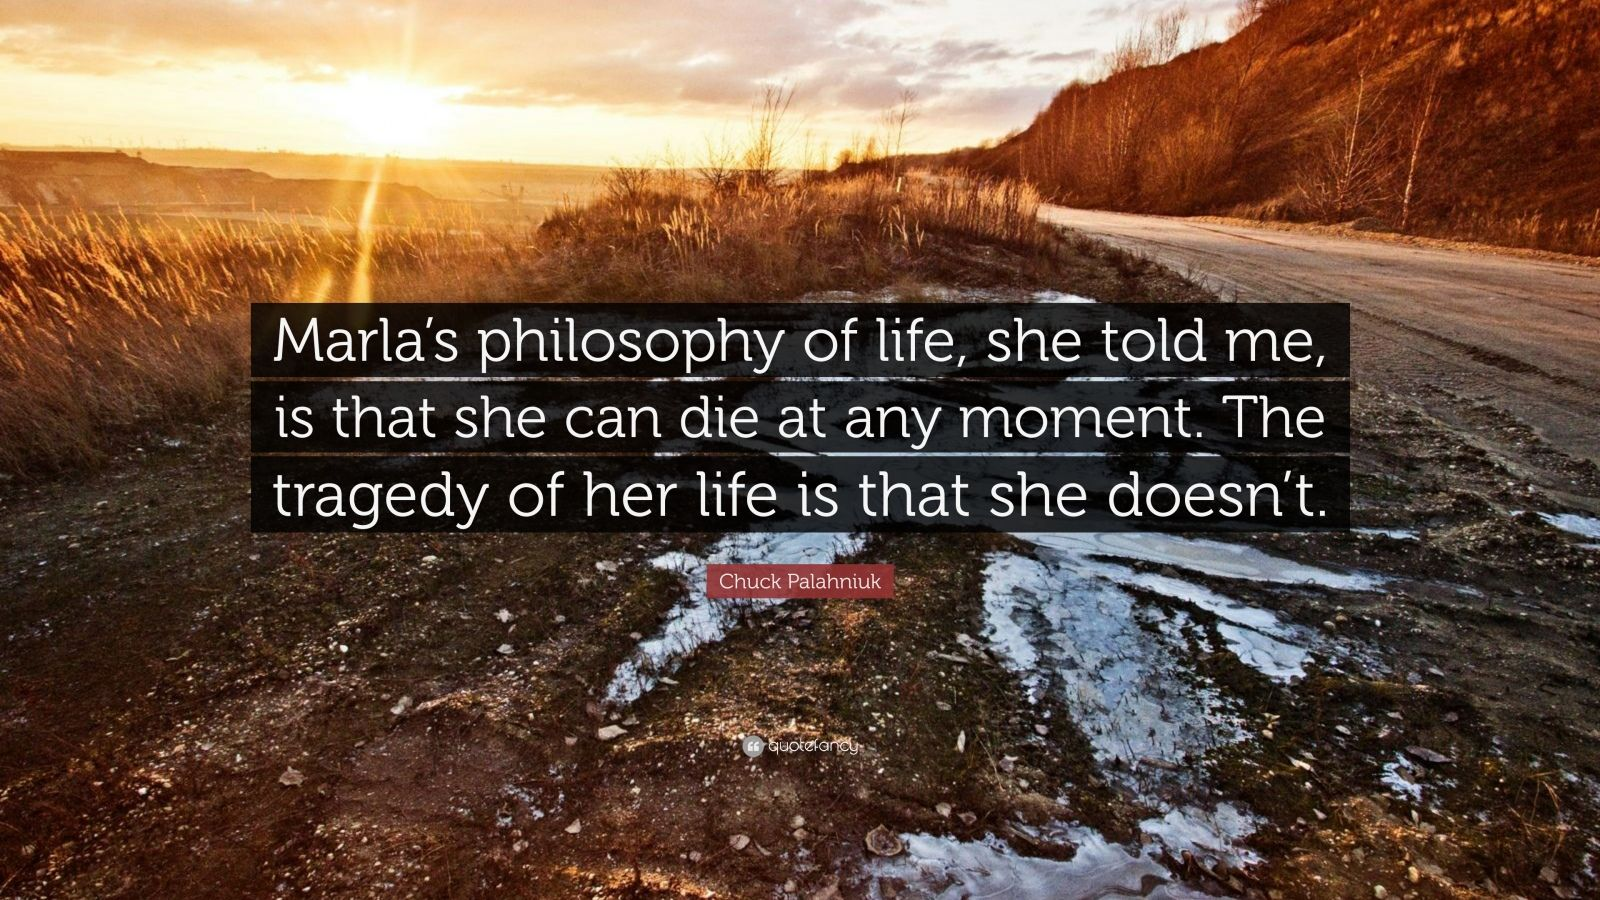 """Chuck Palahniuk Quote: """"Marla's philosophy of life, she told me, is that she can die at any moment. The tragedy of her life is that she doesn't."""""""